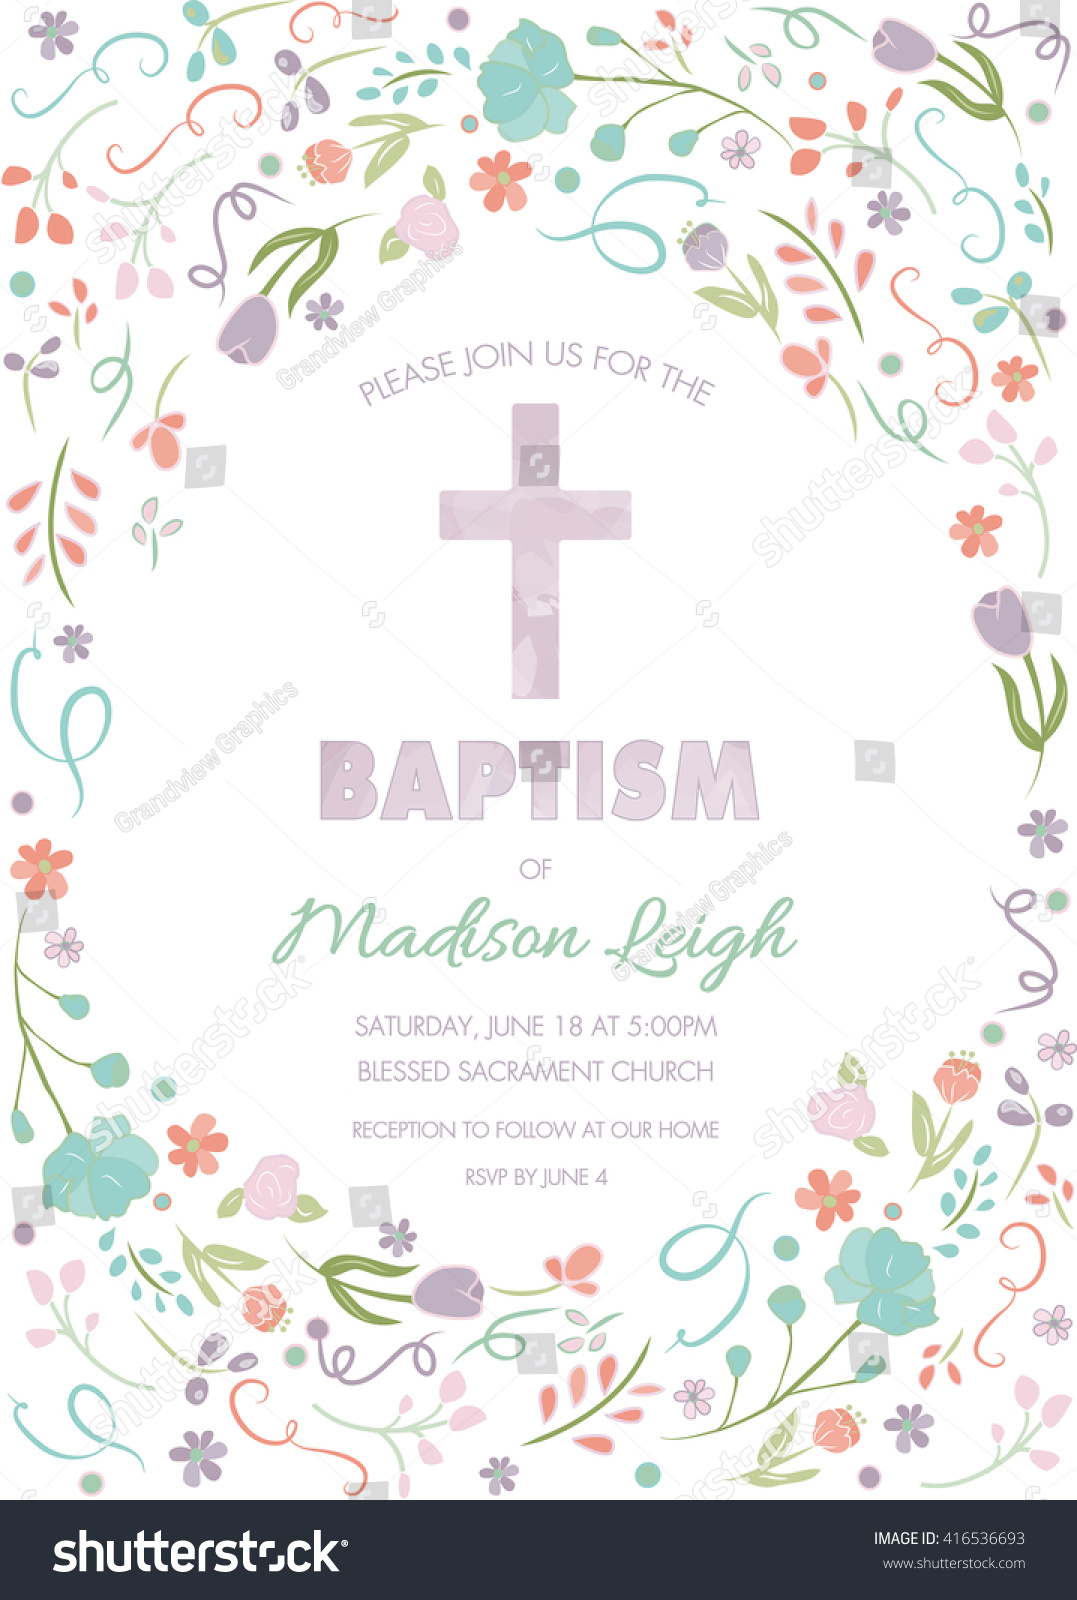 Baptism Christening First Communion Invite Template Stock Vector ...